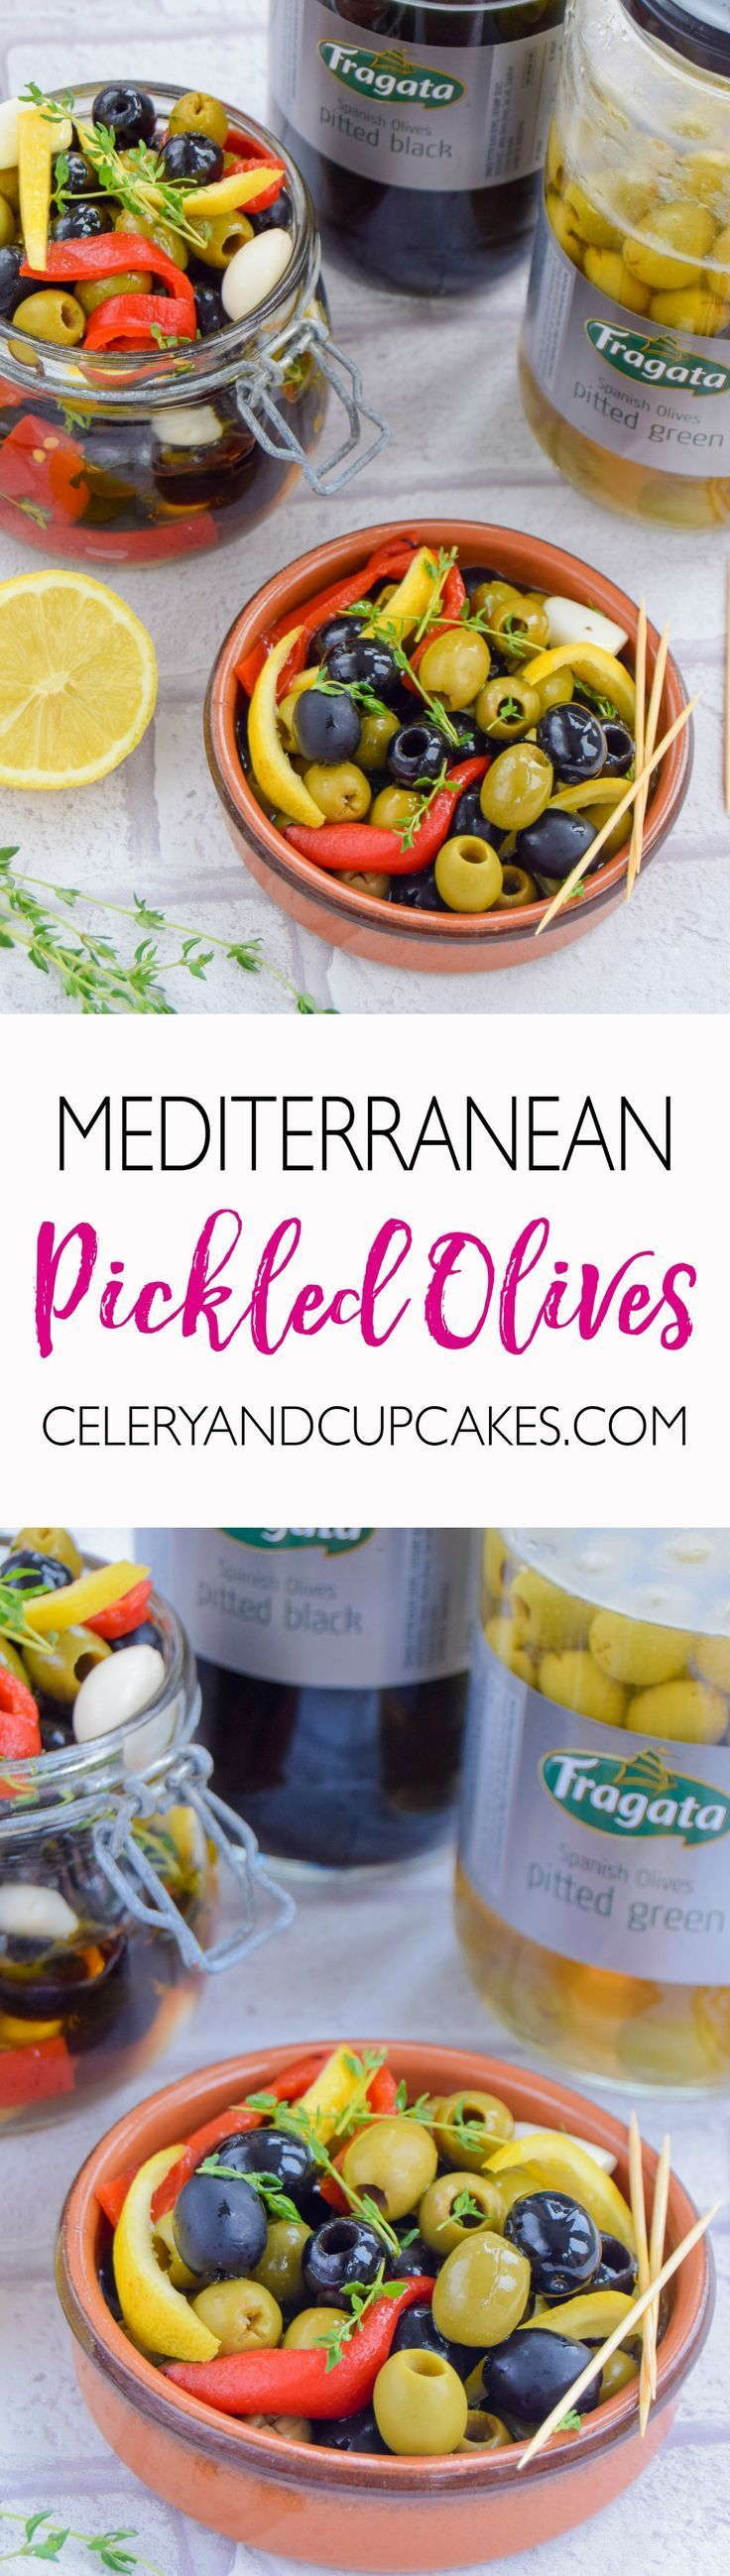 Is your summer a complete washout? Reclaim your summer, by bringing the sunshine indoors with these Mediterranean pickled olives with roasted red peppers and garlic.